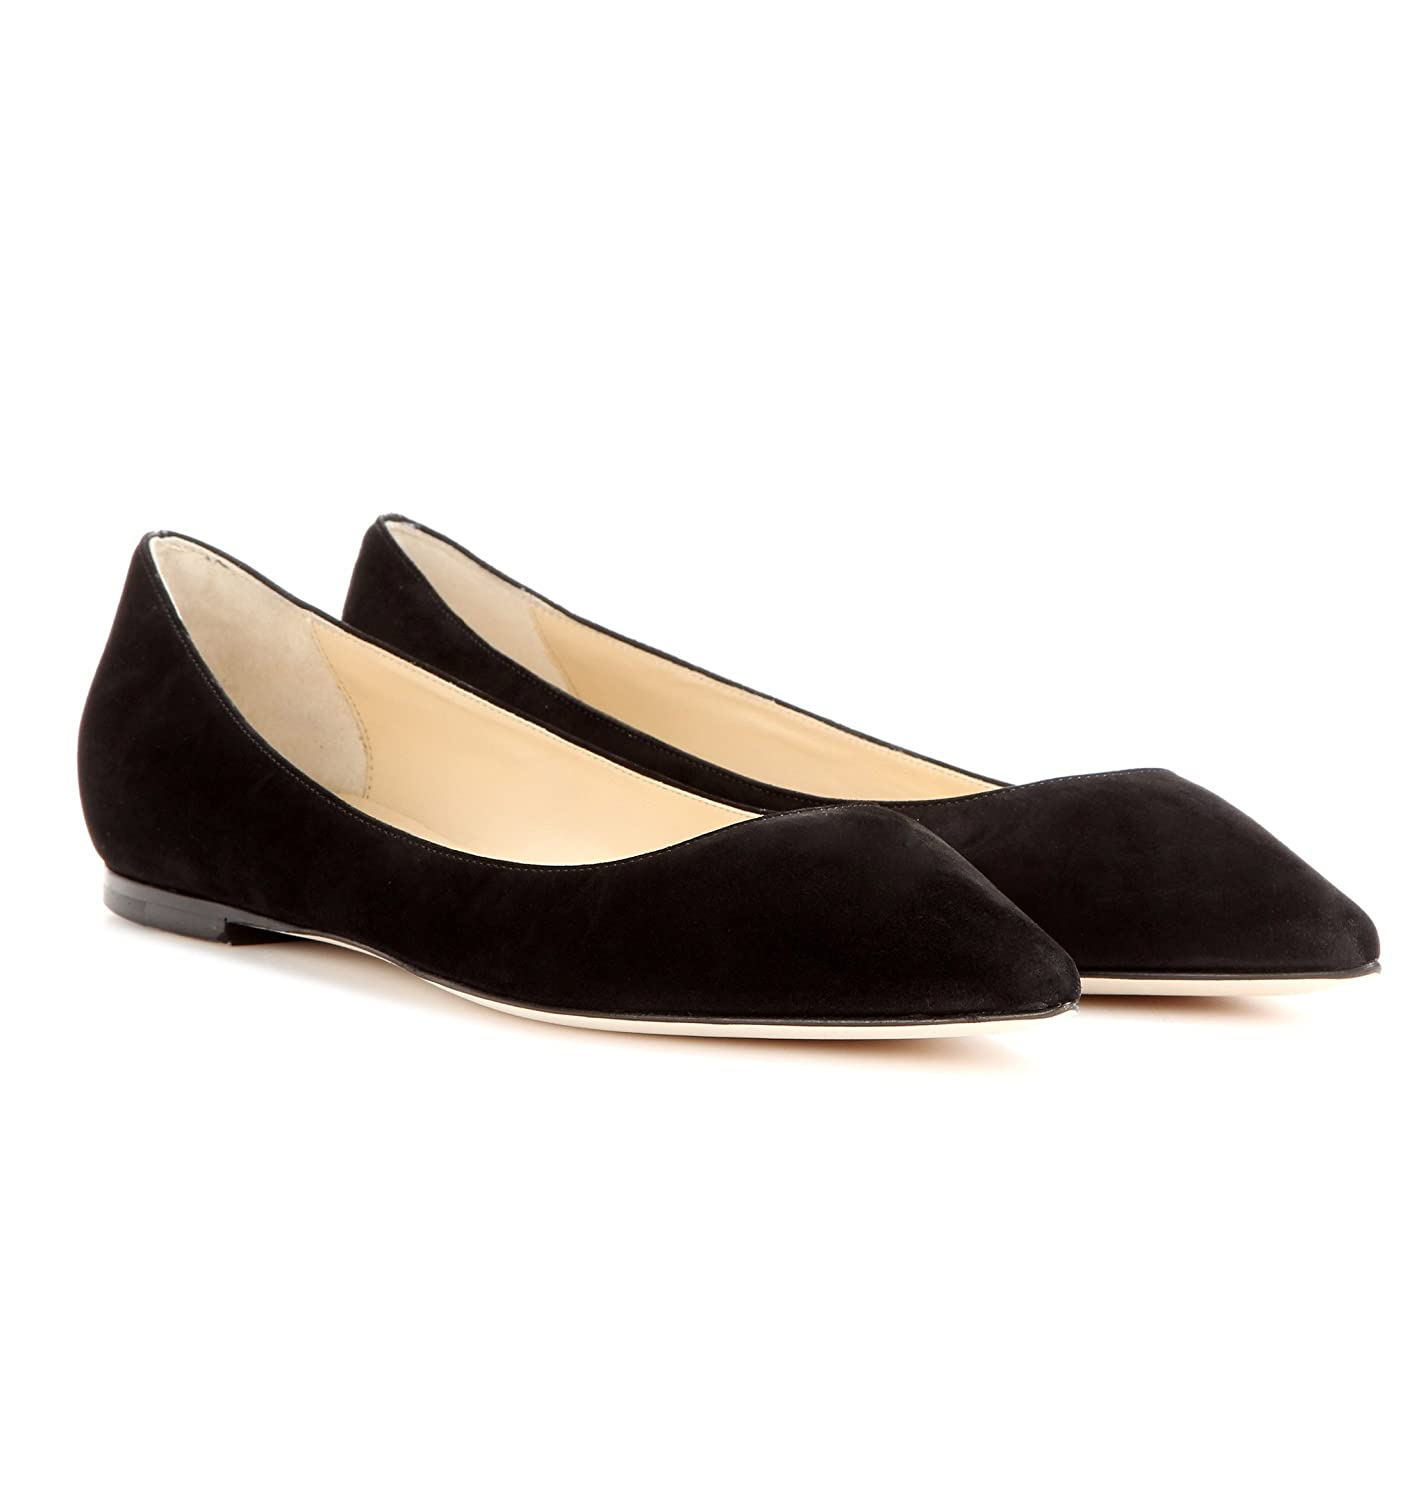 Sammitop Women's Pointed Toe Flats Cut-outs Shoes Ballet Shoes Slip-on Casual Shoes Cut-outs B075K8V2V2 5 B(M) US|A-black 2219e5